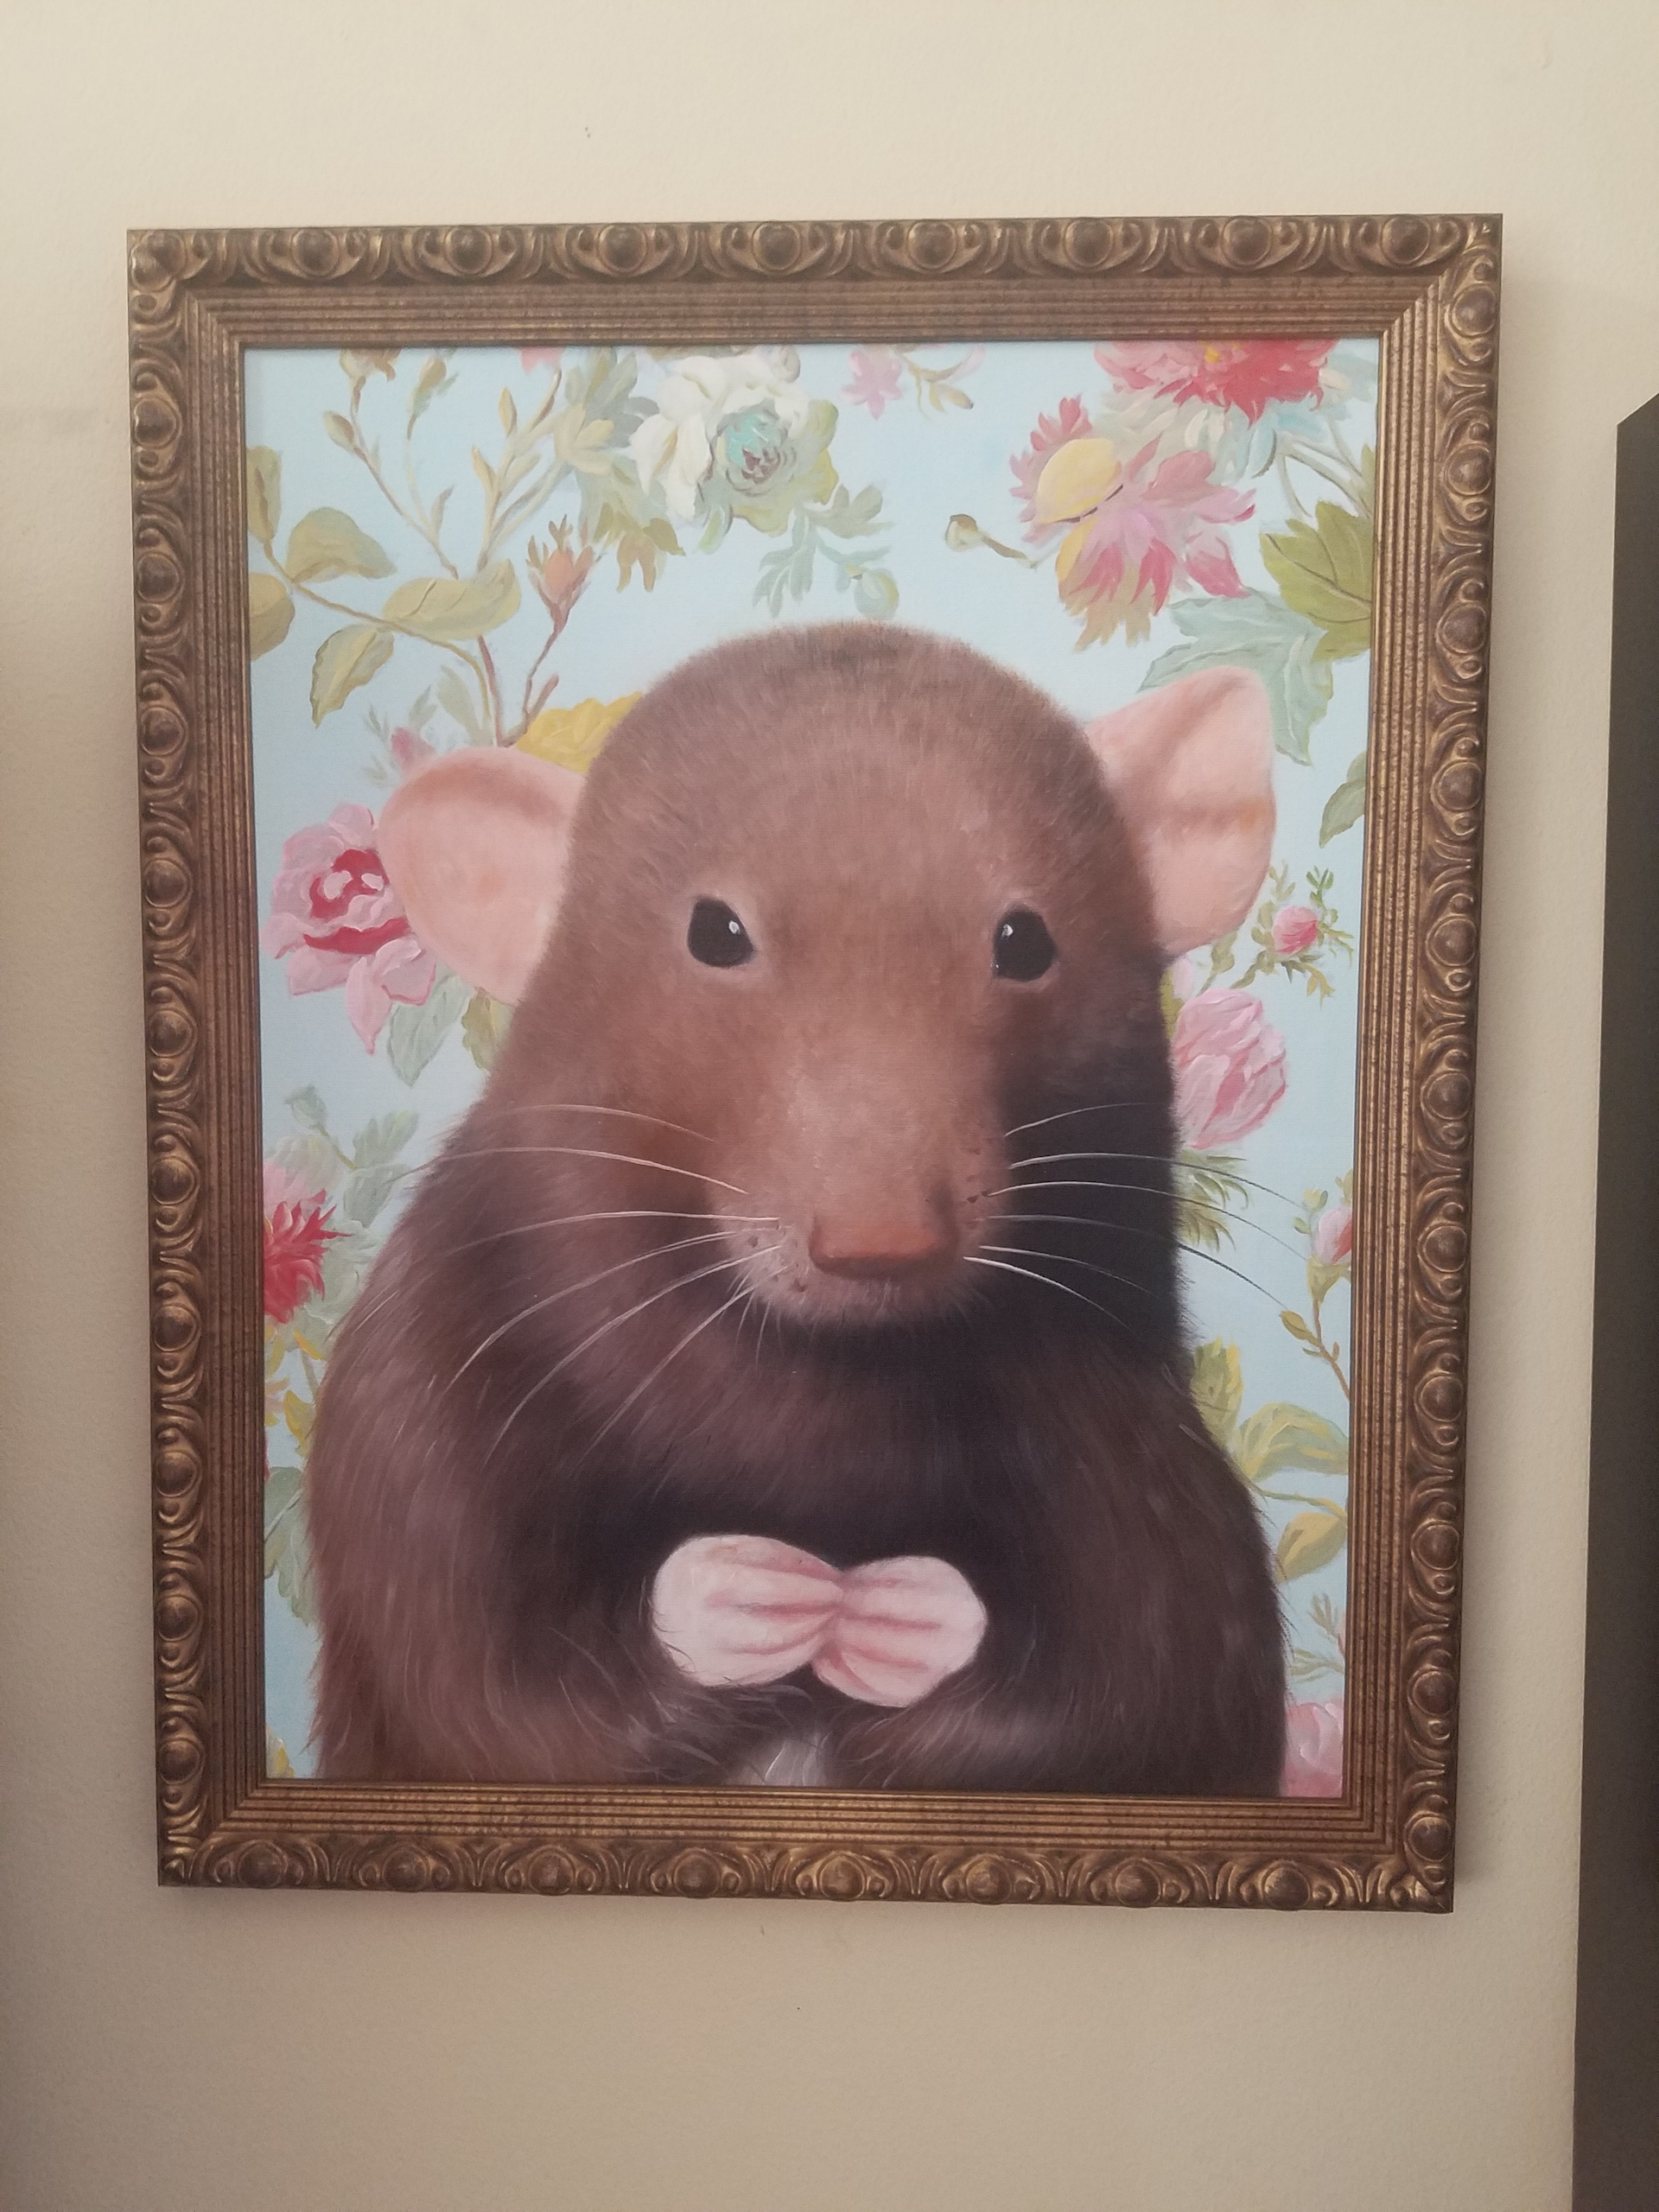 Rat painting portrait by Splendid Beast